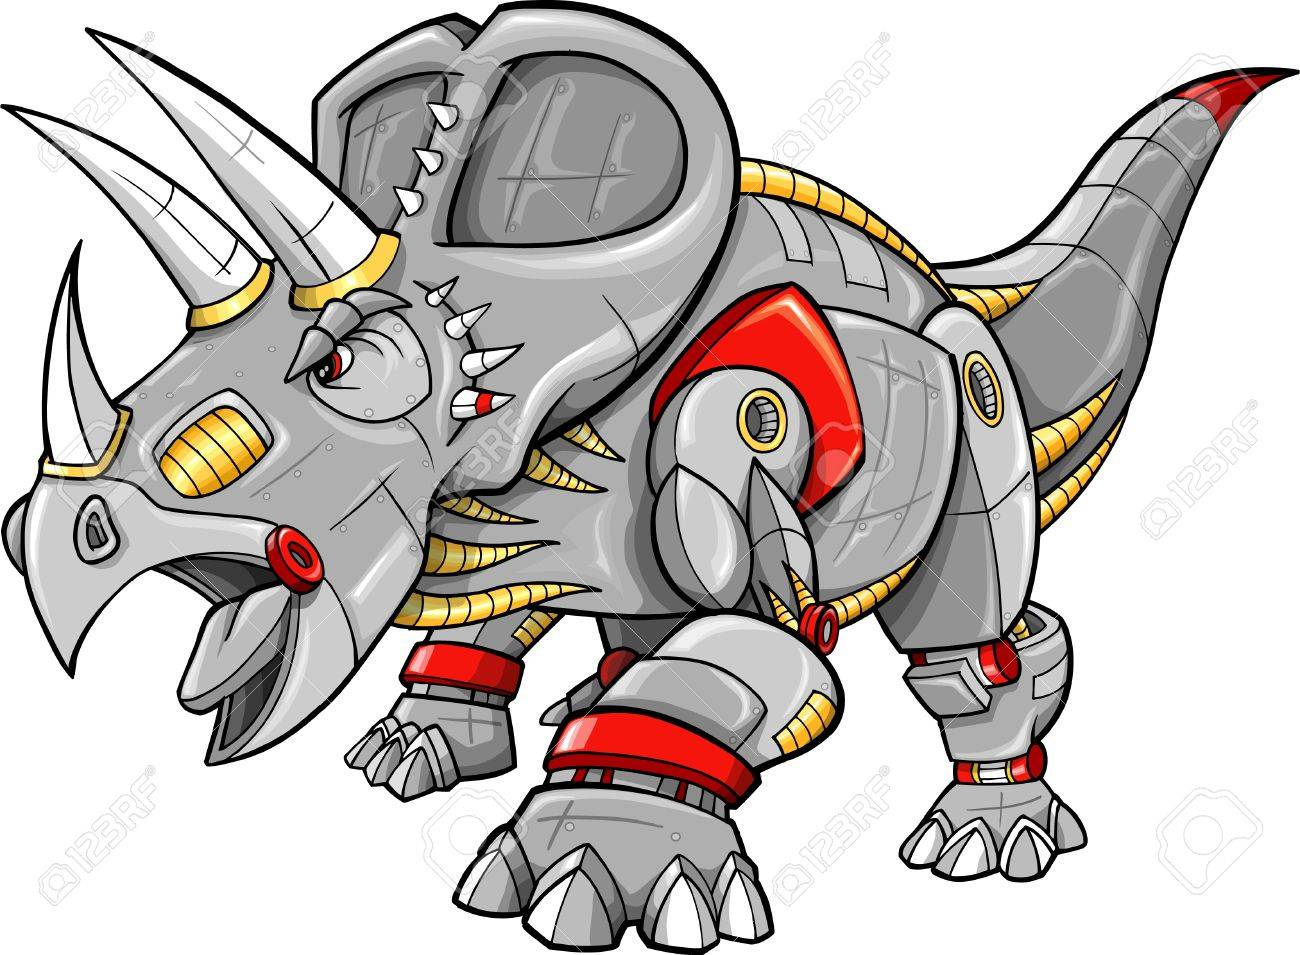 Robot Machine Triceratops Dinosaur Vector Illustration Stock Vector - 9516760